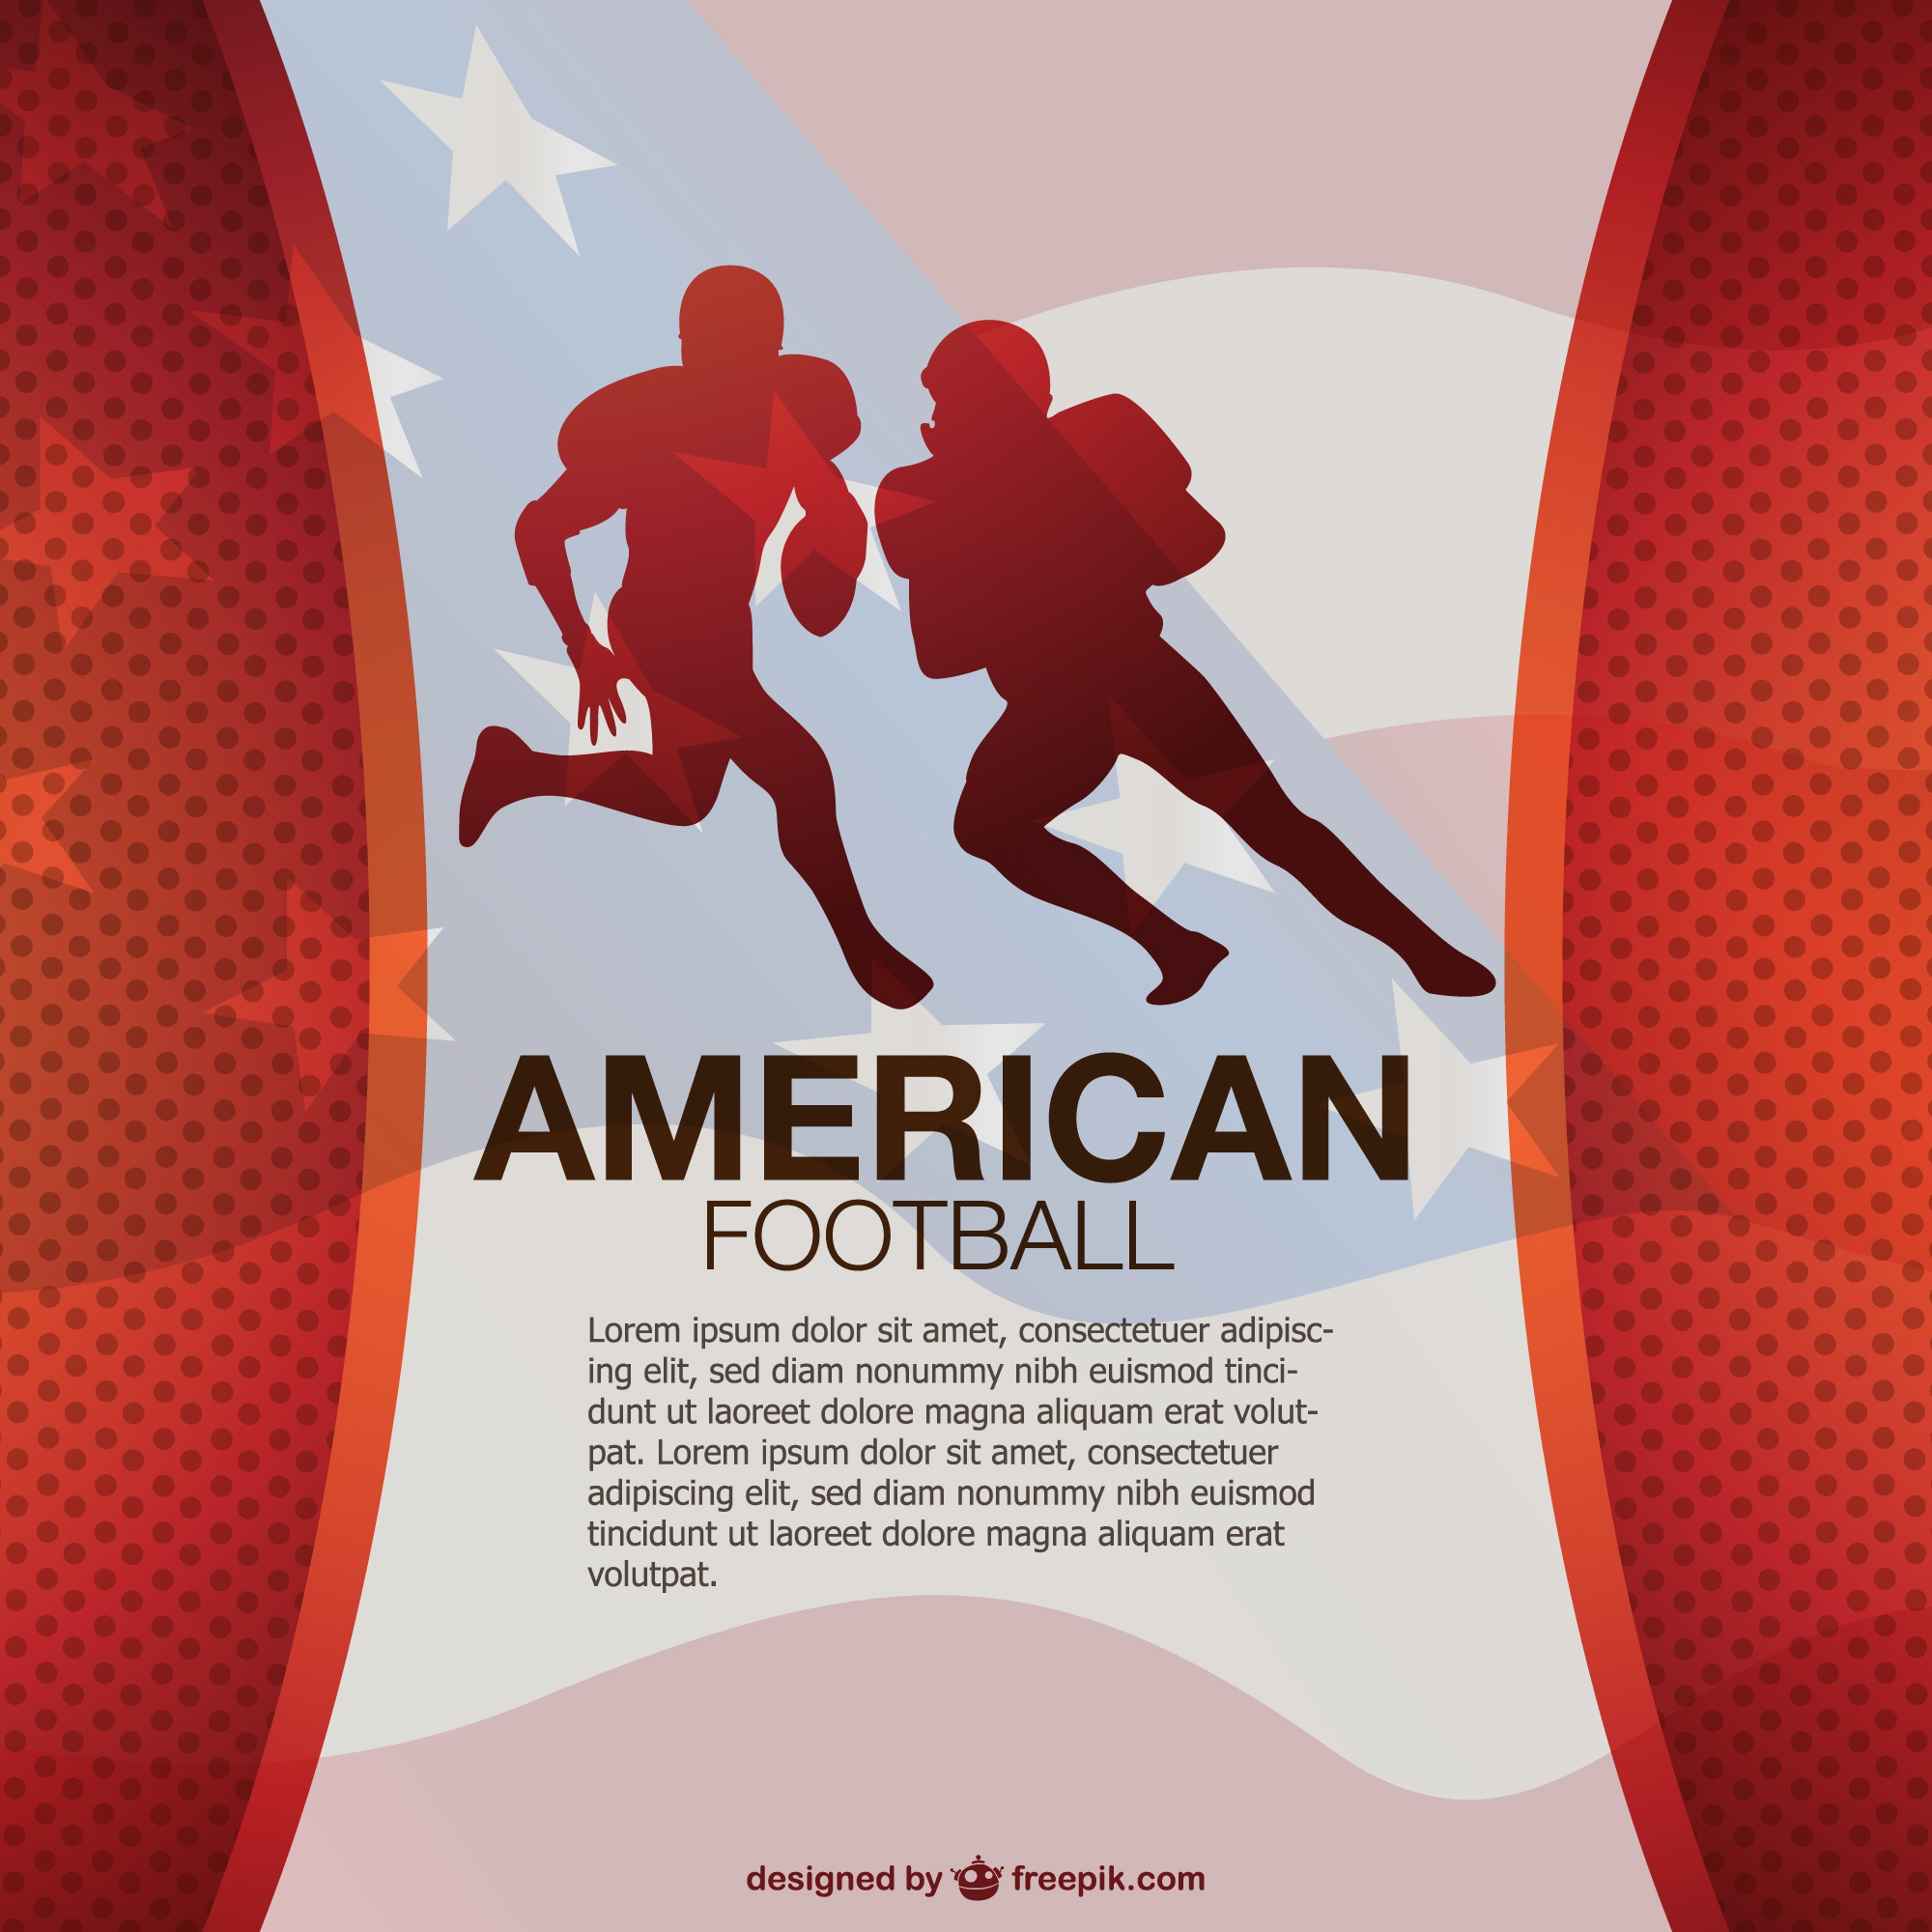 Free American football vector design